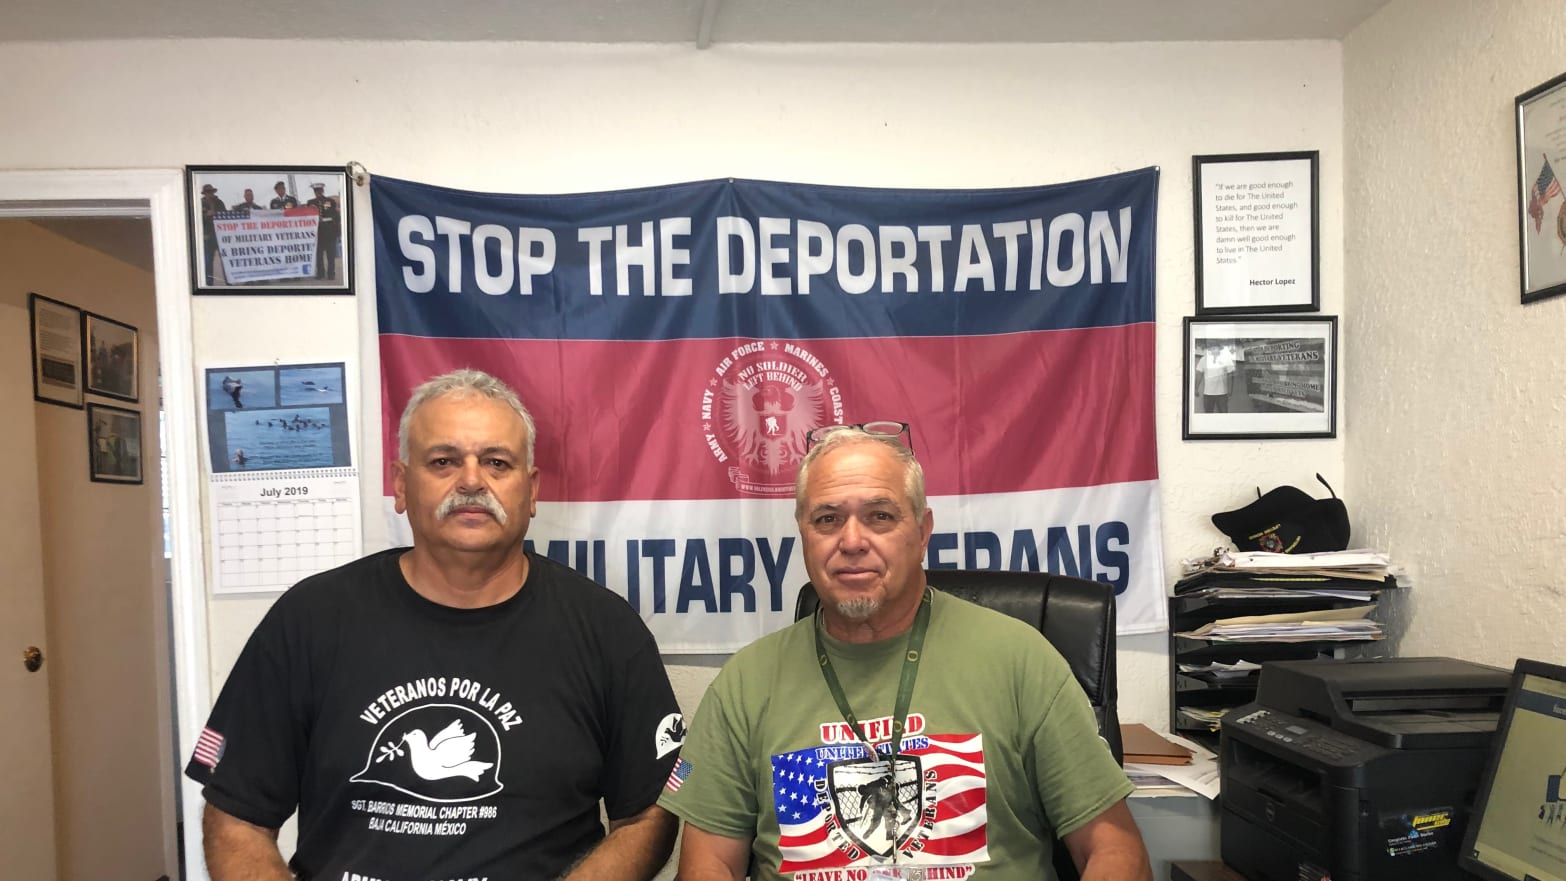 These Deported Veterans Say Rescuing Migrants Is Their Duty